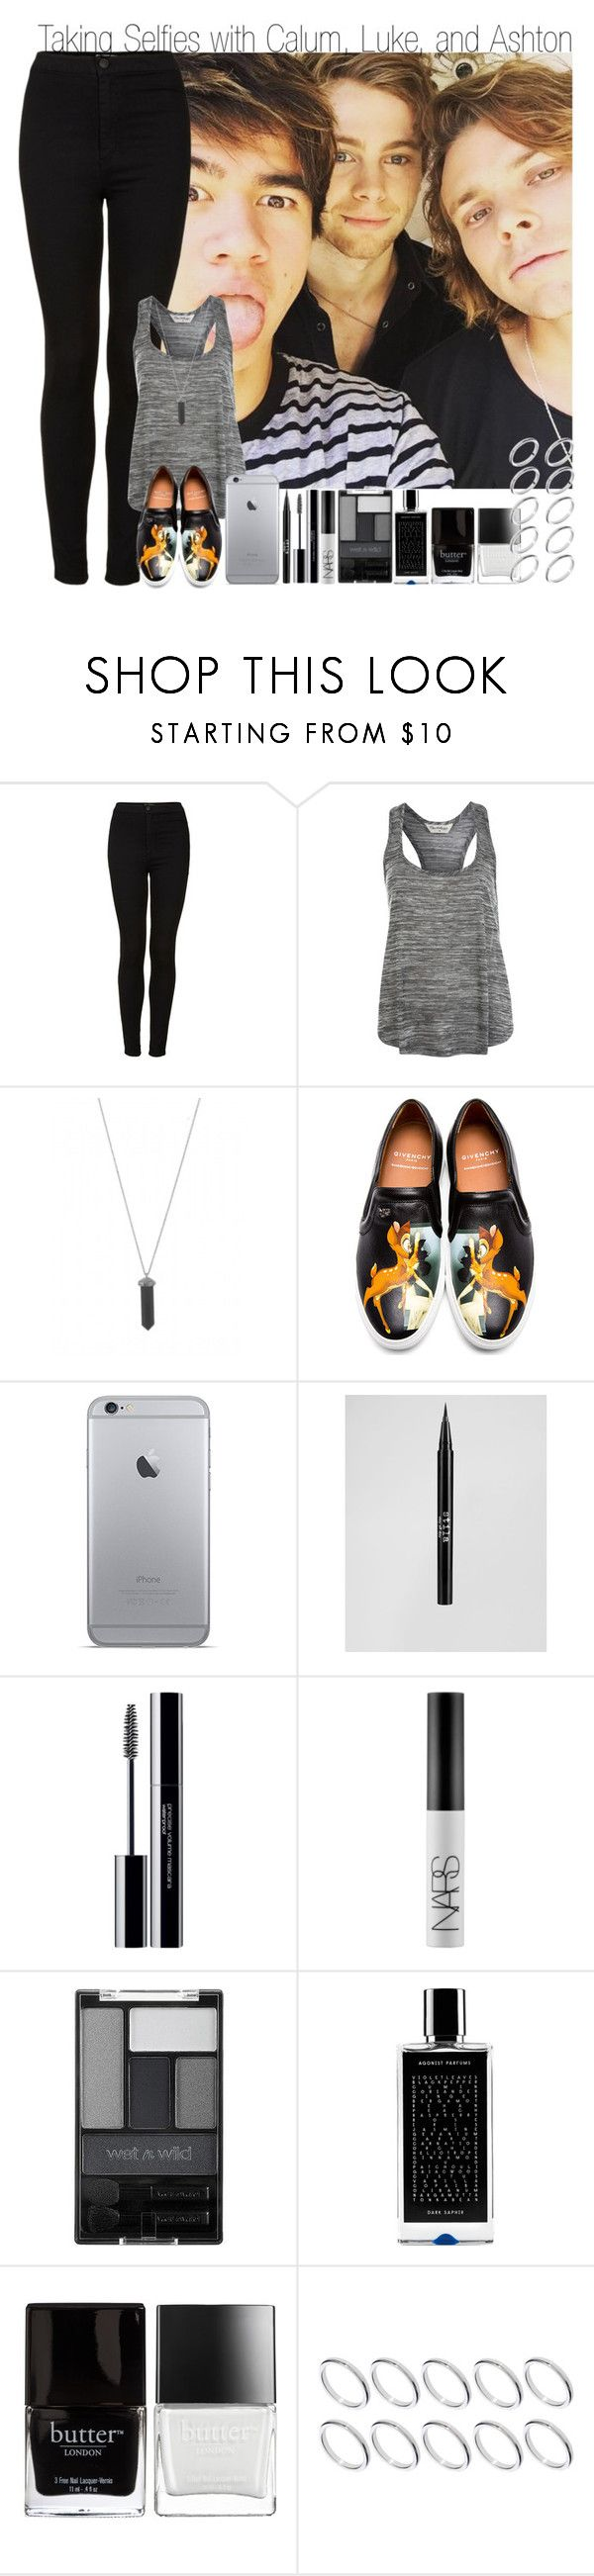 """""""Taking Selfies with Calum, Luke, and Ashton"""" by elise-22 ❤ liked on Polyvore featuring Topshop, Miss Selfridge, Karen Kane, Givenchy, Stila, shu uemura, NARS Cosmetics, Wet n Wild, Agonist and Butter London"""